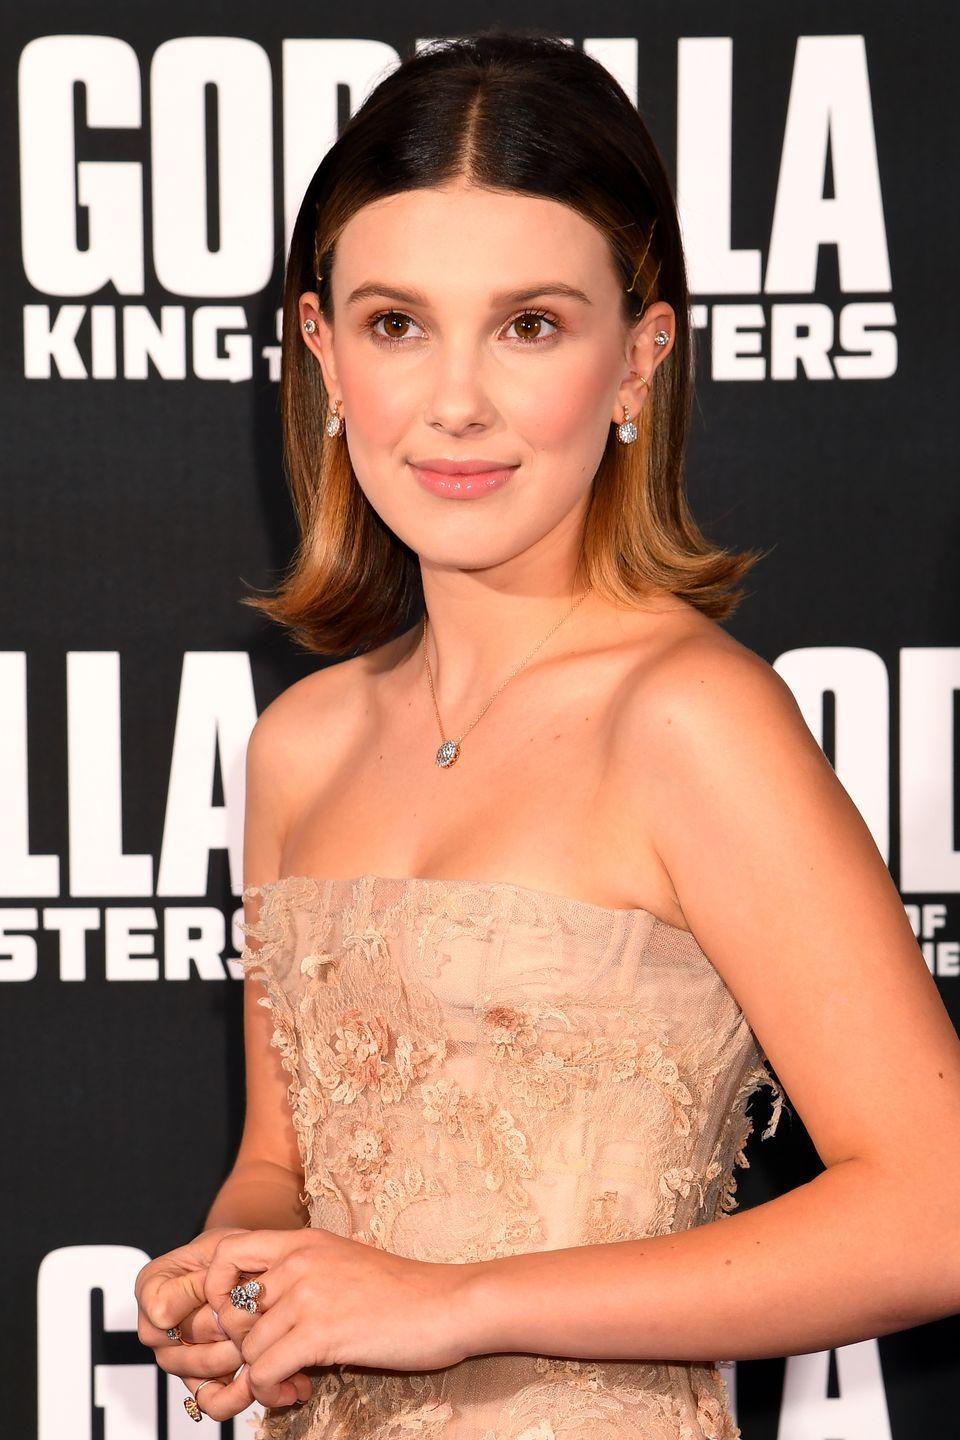 <p>Millie became one of the youngest Emmy nominees in history when she was nominated at age the age of 13 for Outstanding Supporting Actress in a Drama Series for her role as Eleven in <em>Stranger Things</em>. She's also the youngest person to be nominated as a UNICEF Goodwill Ambassador and is so well-spoken it's easy to forget she can't legally drive.</p>